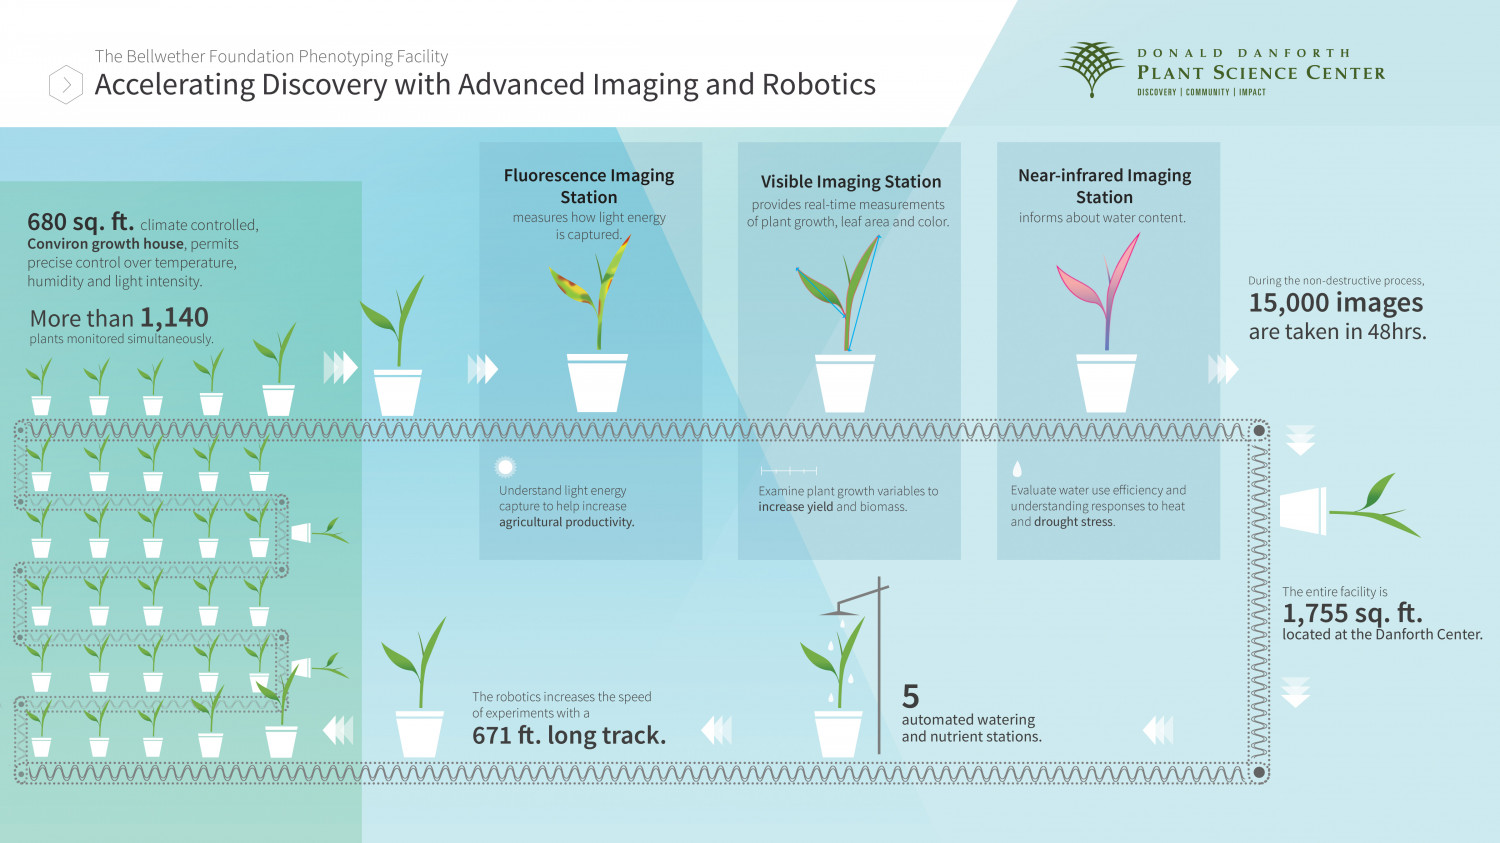 Accelerating Discovery with Advanced Imaging and Robotics  Infographic